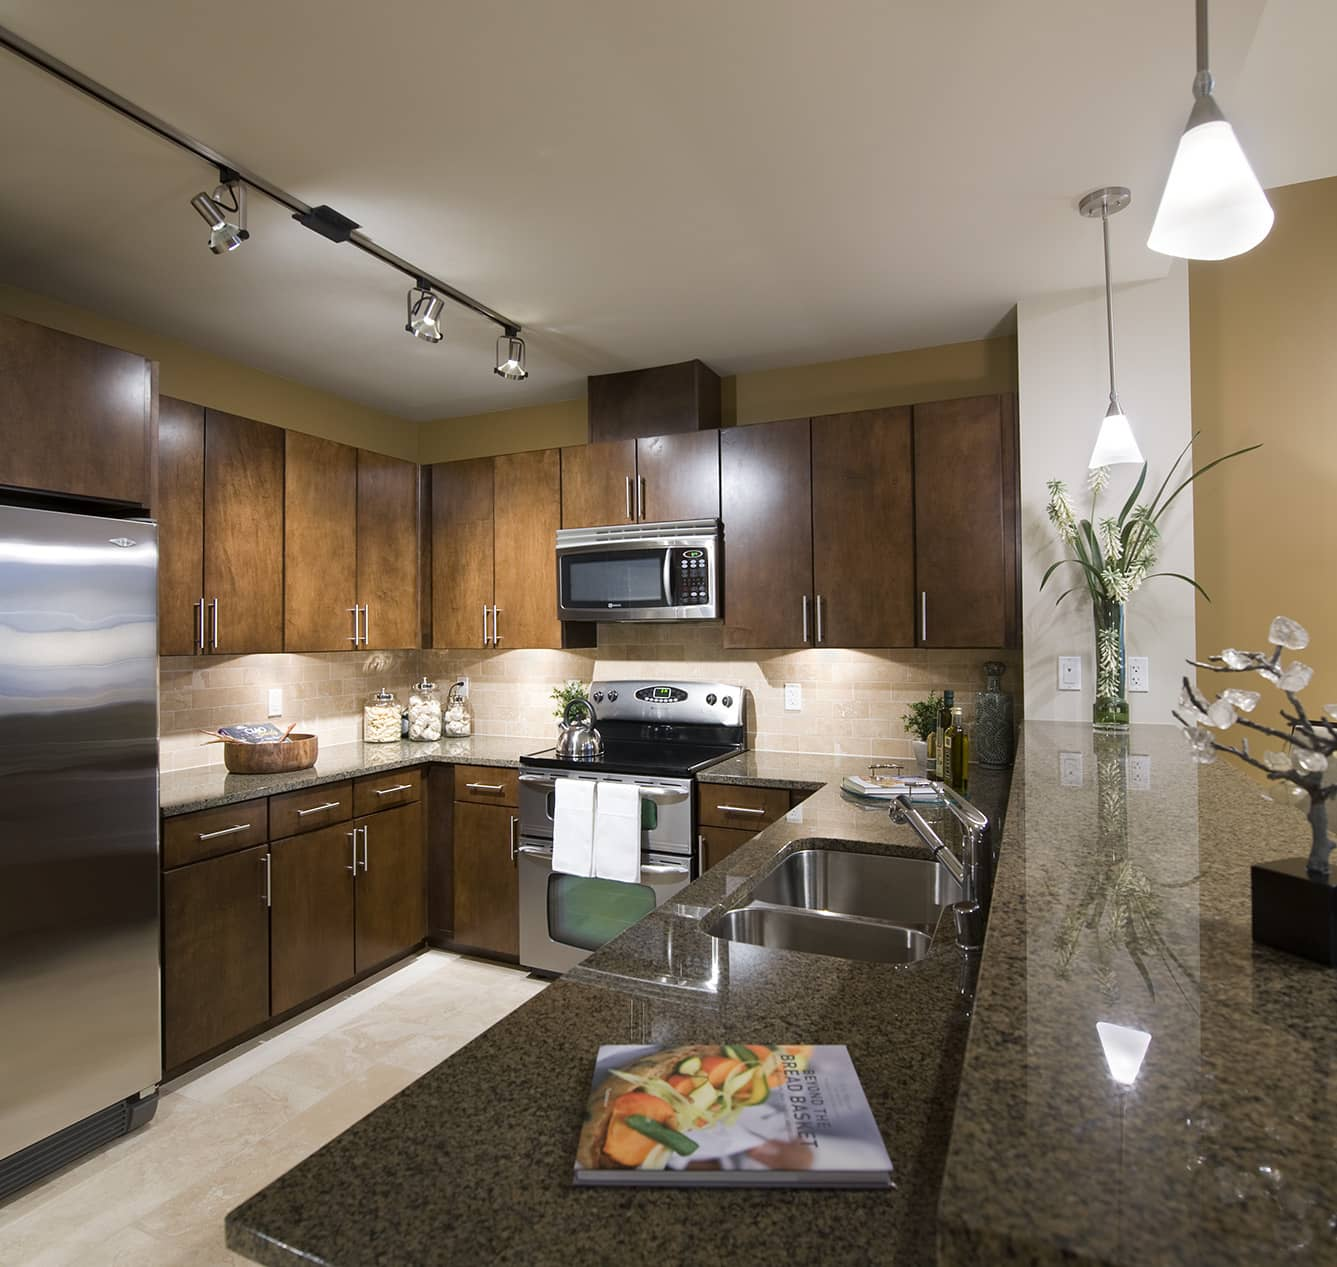 Kitchen at The Olivian Apartment, Belltown, Seattle